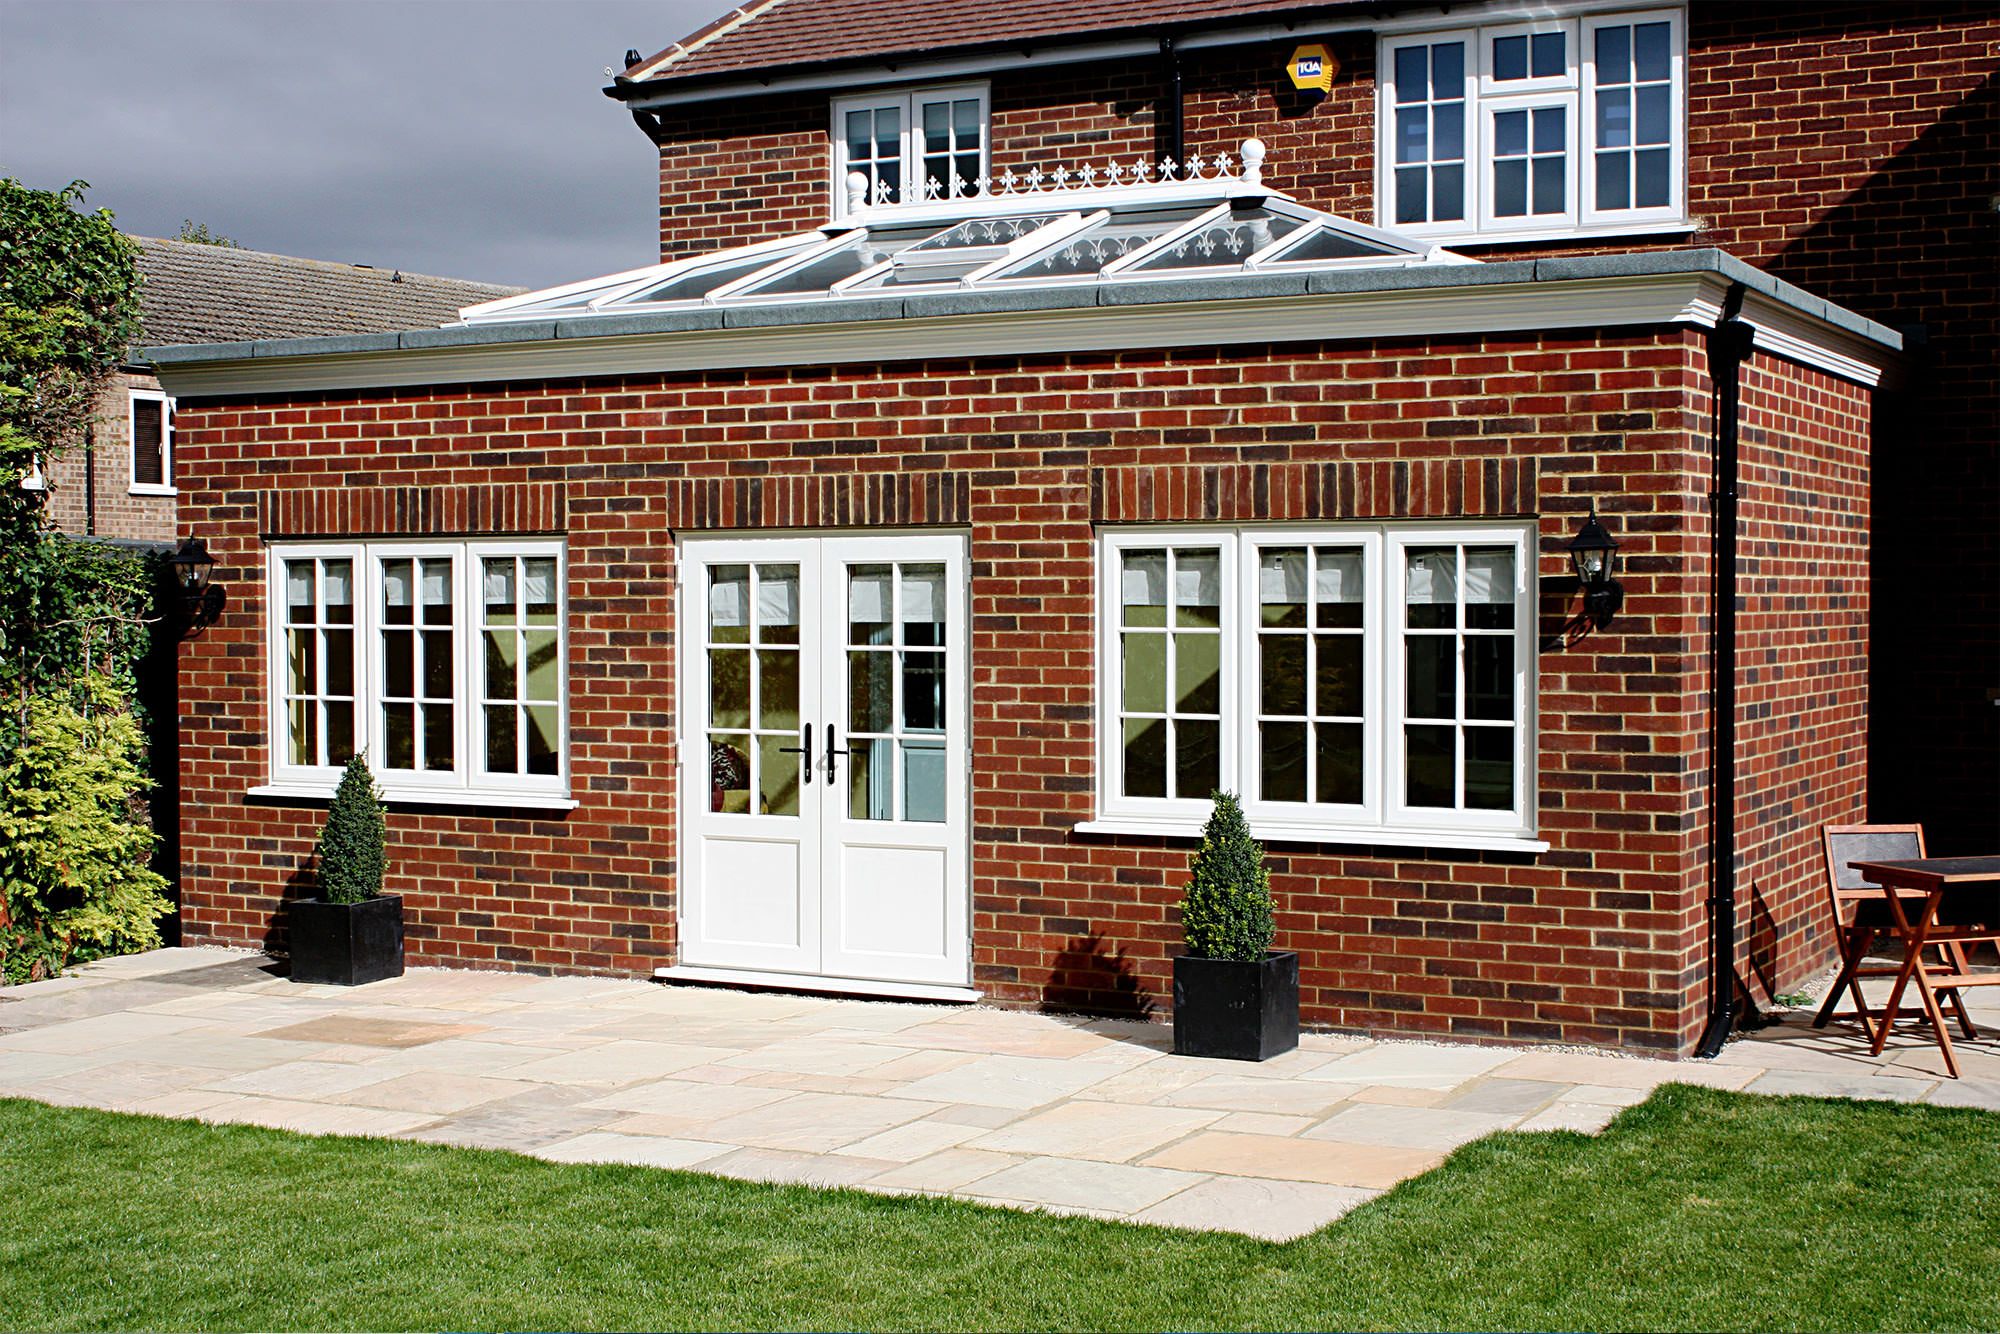 conservatory to orangery conversion cost